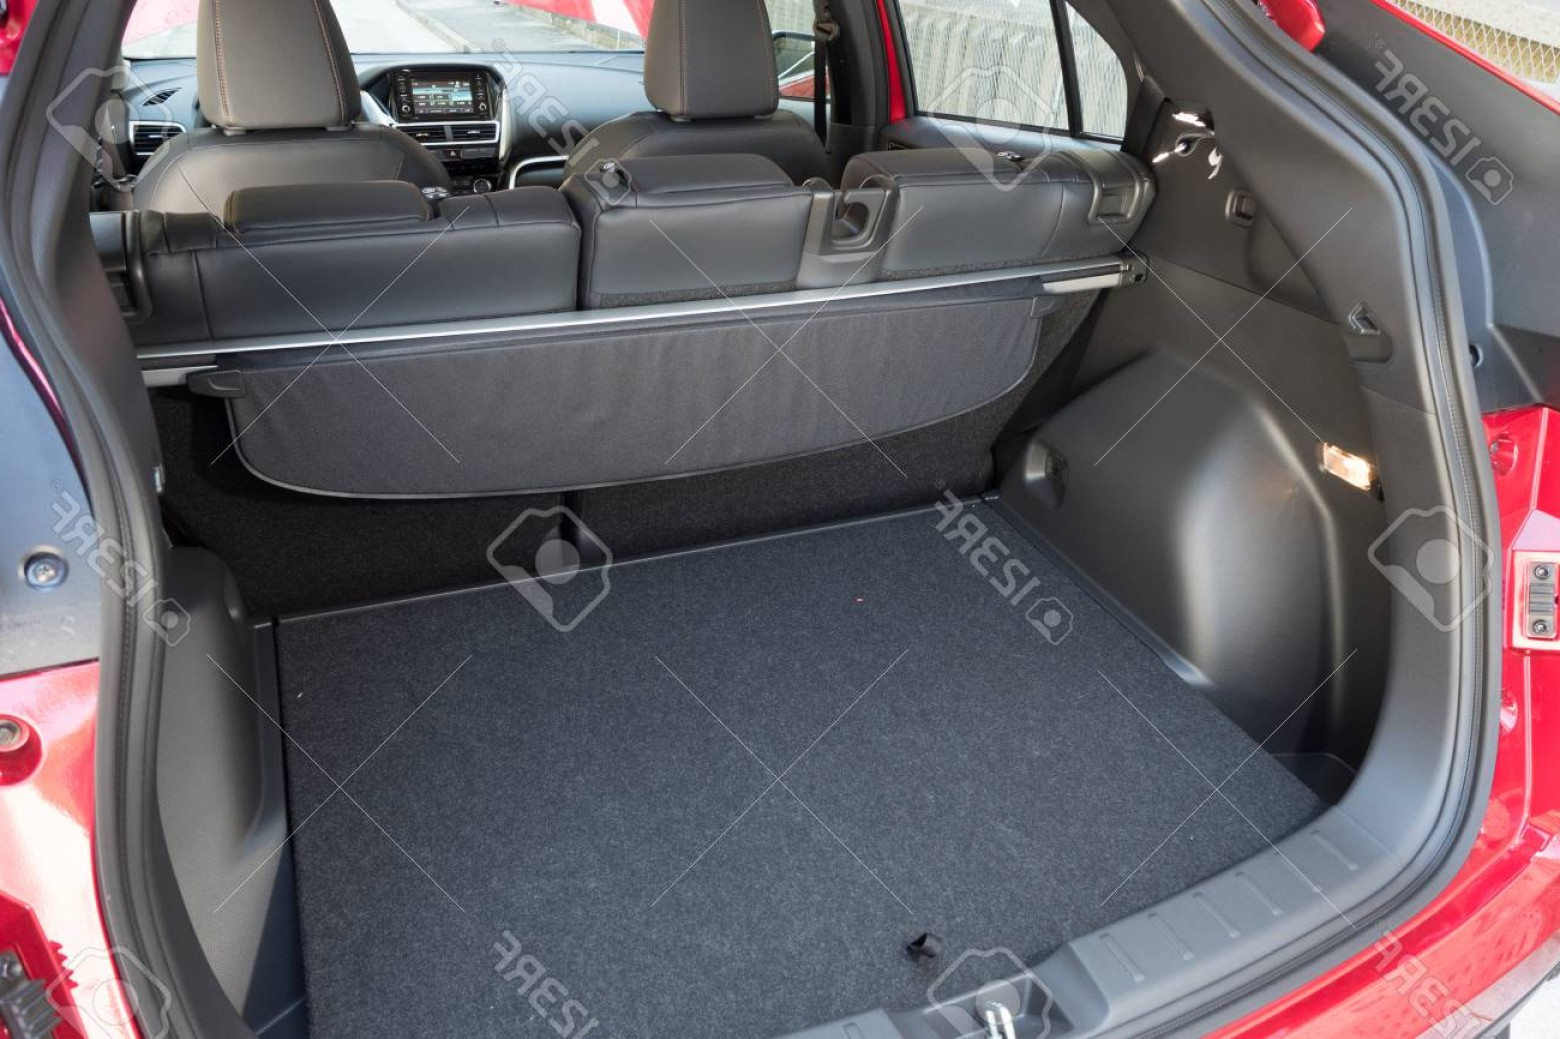 Mitsubishi Eclipse Vector: Photohong Kong China March Mitsubishi Eclipse Cross Trunk March In Hong Kong